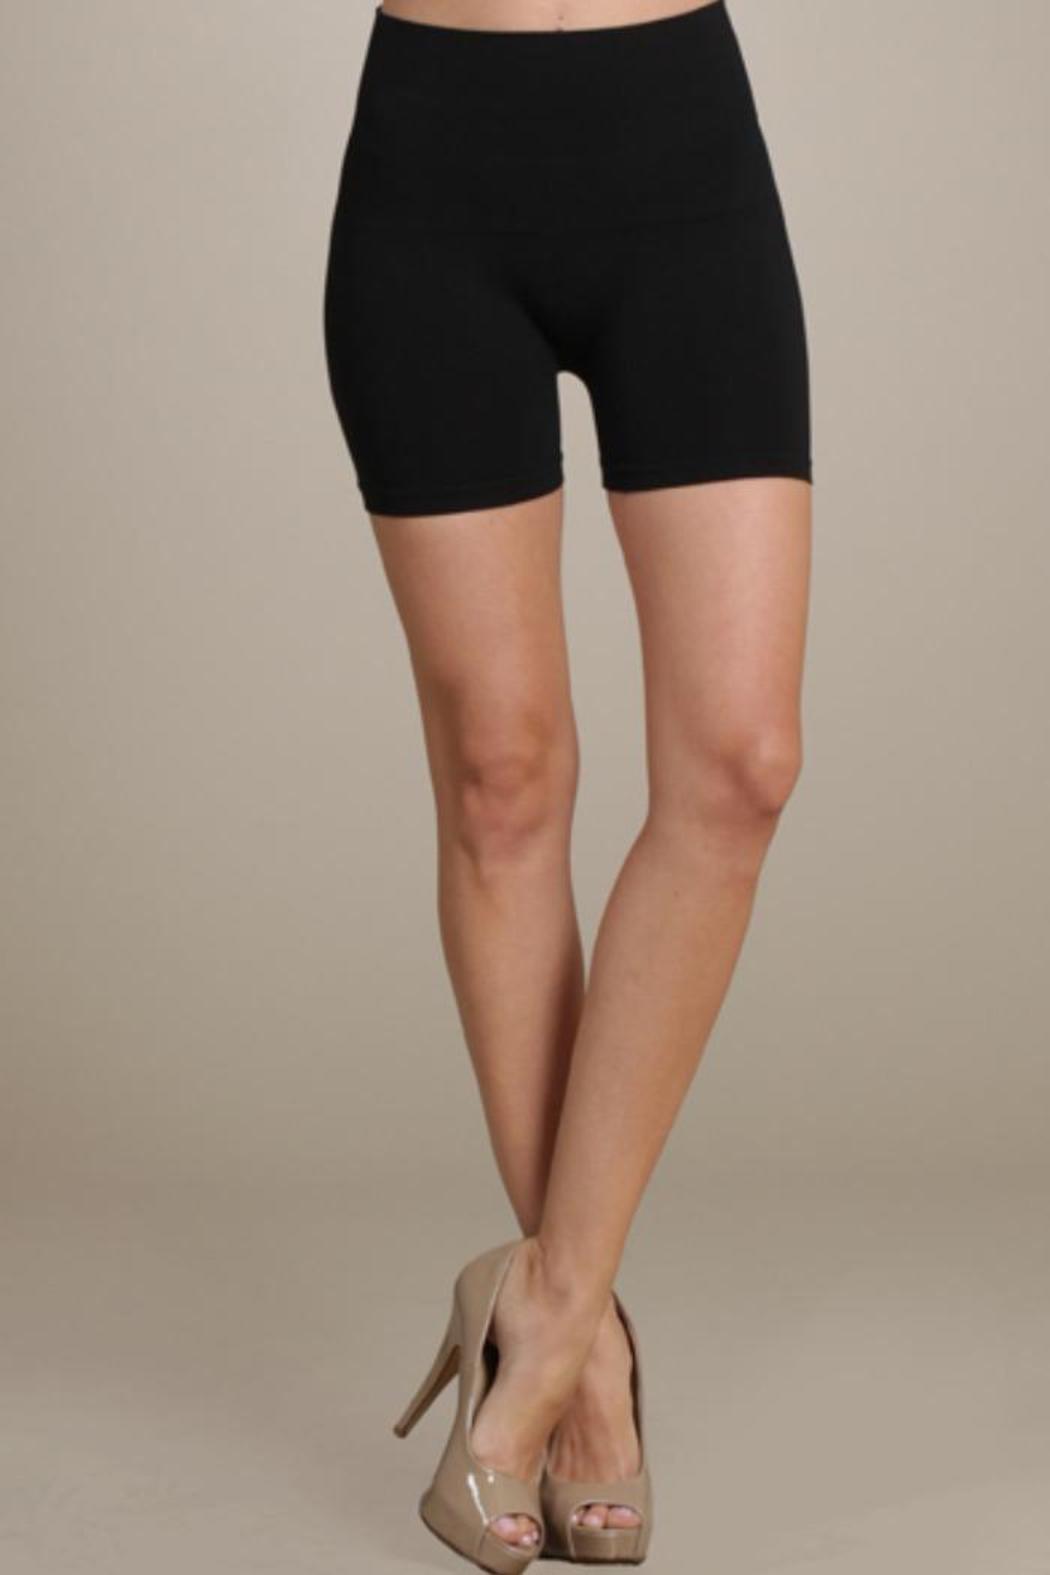 m rena short leggings from new york by gadogado � shoptiques